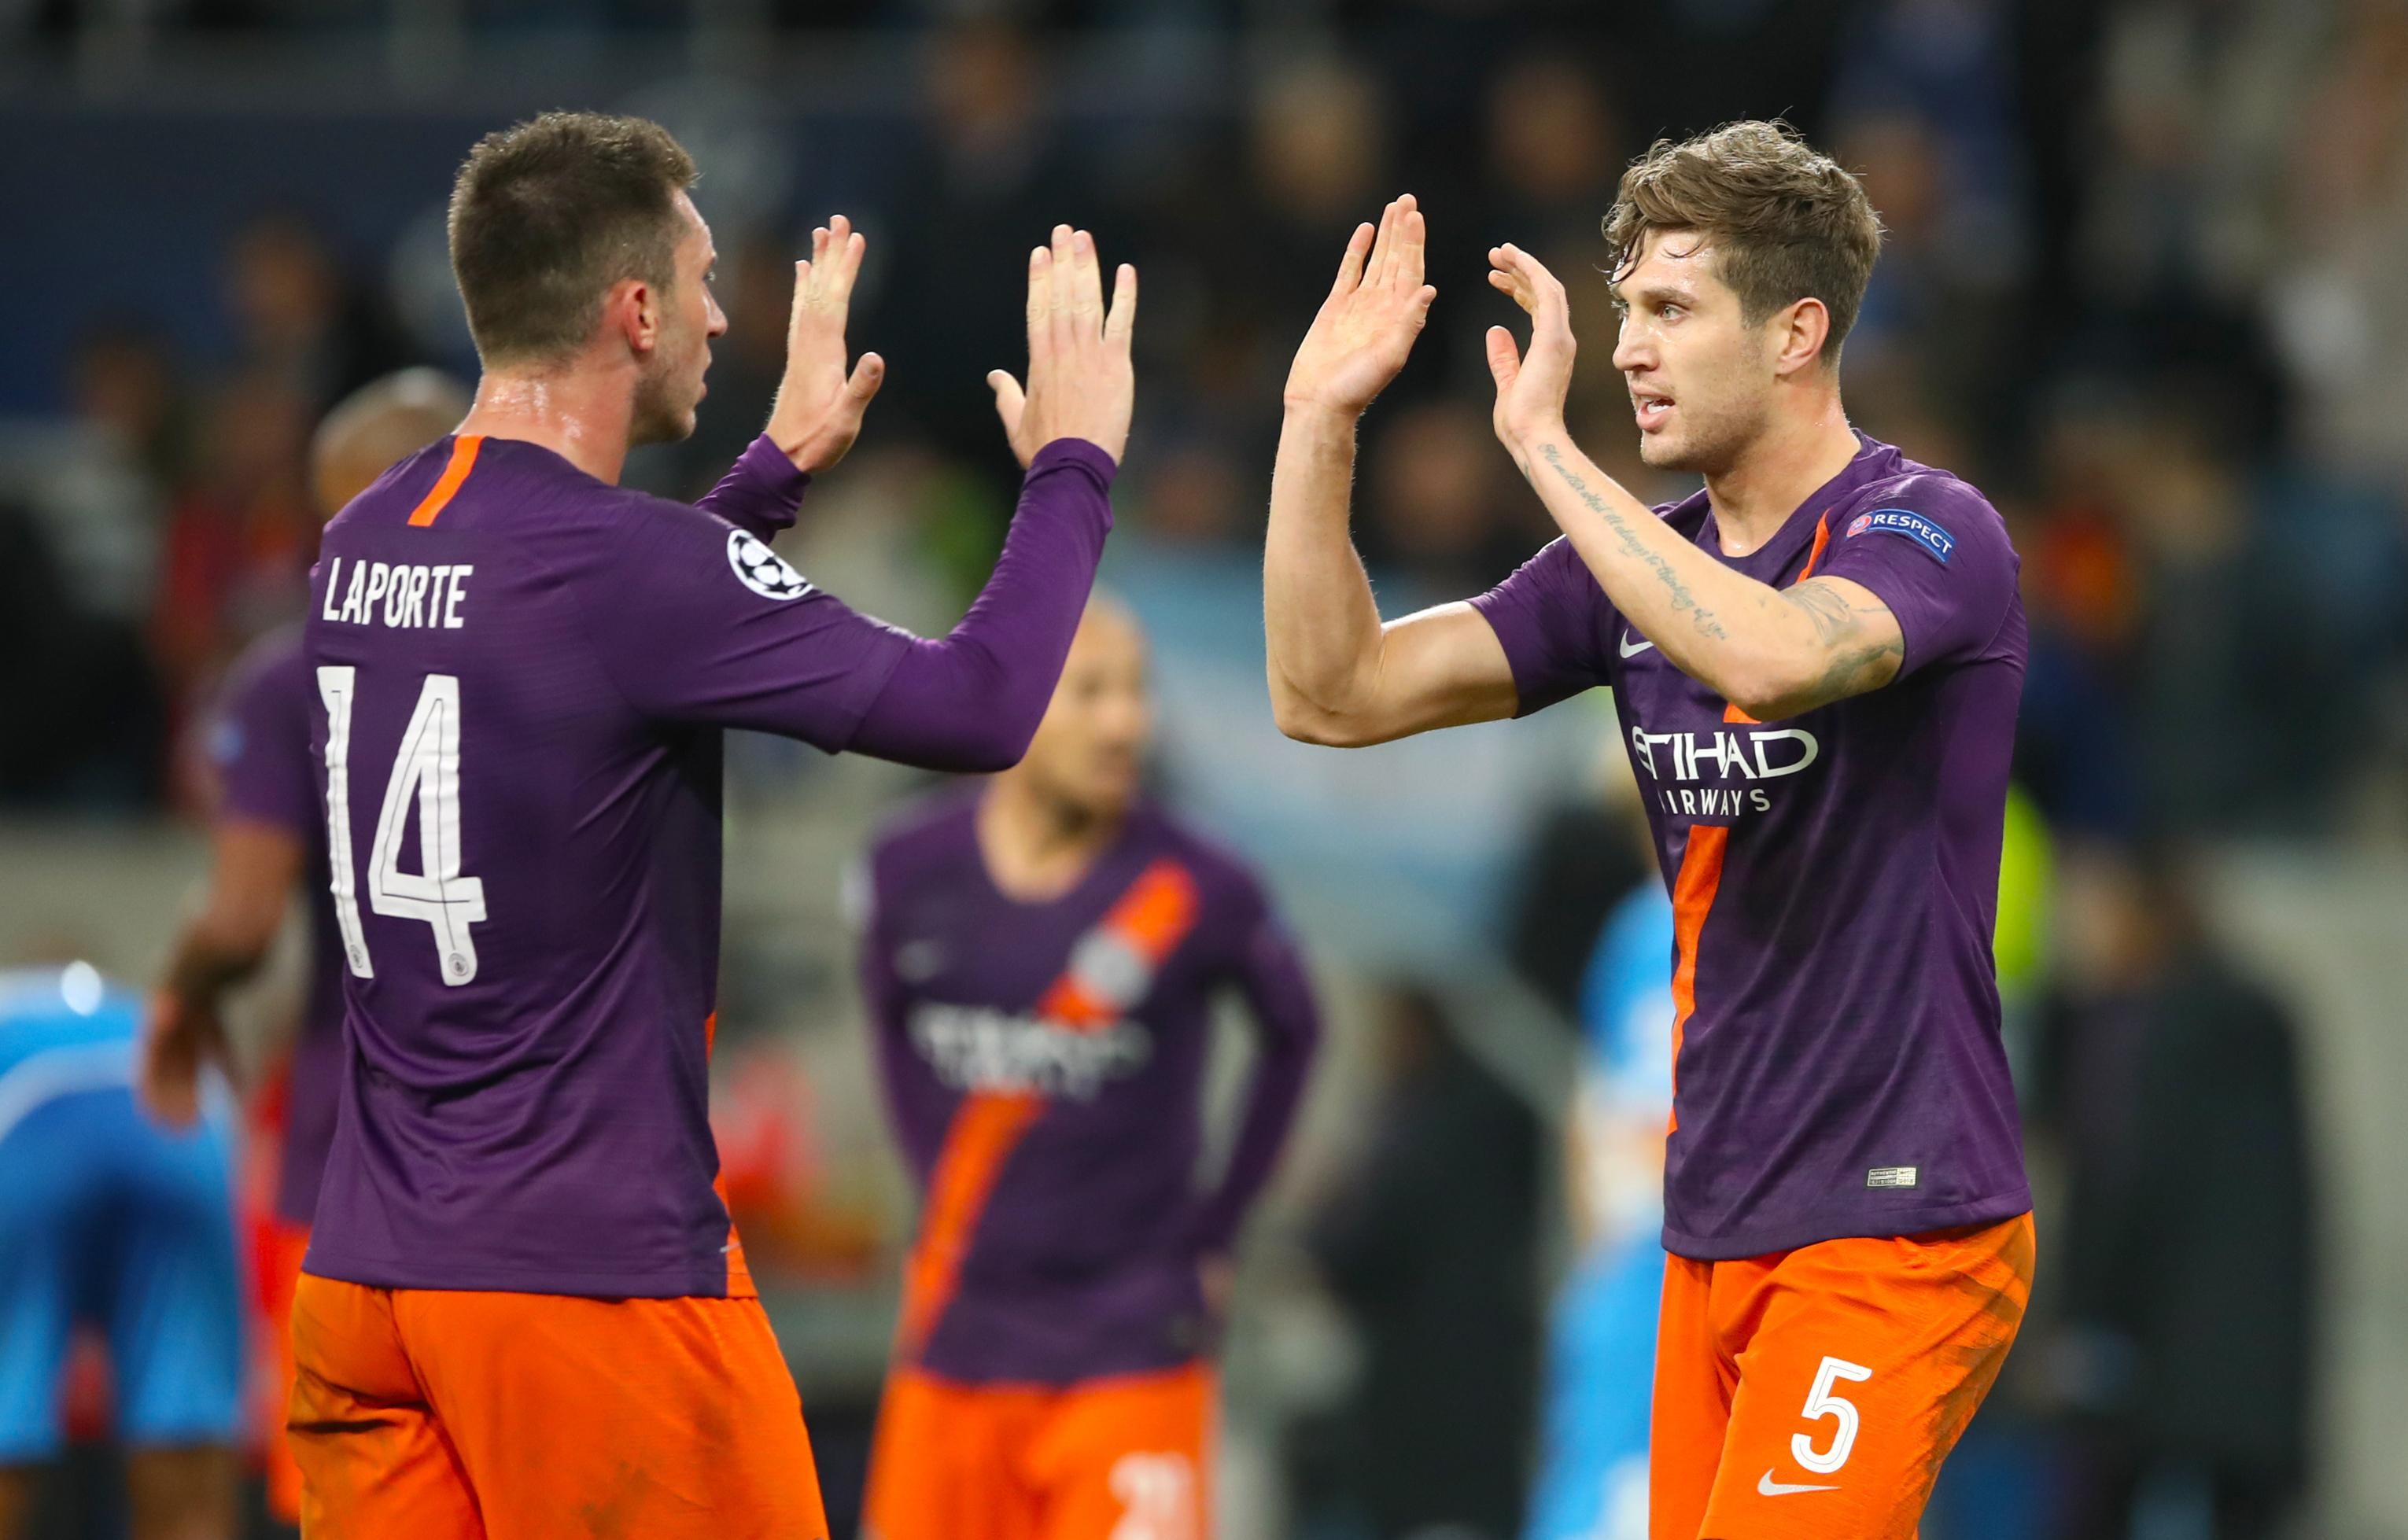 Aymeric Laporte and John Stones face their toughest test of the season